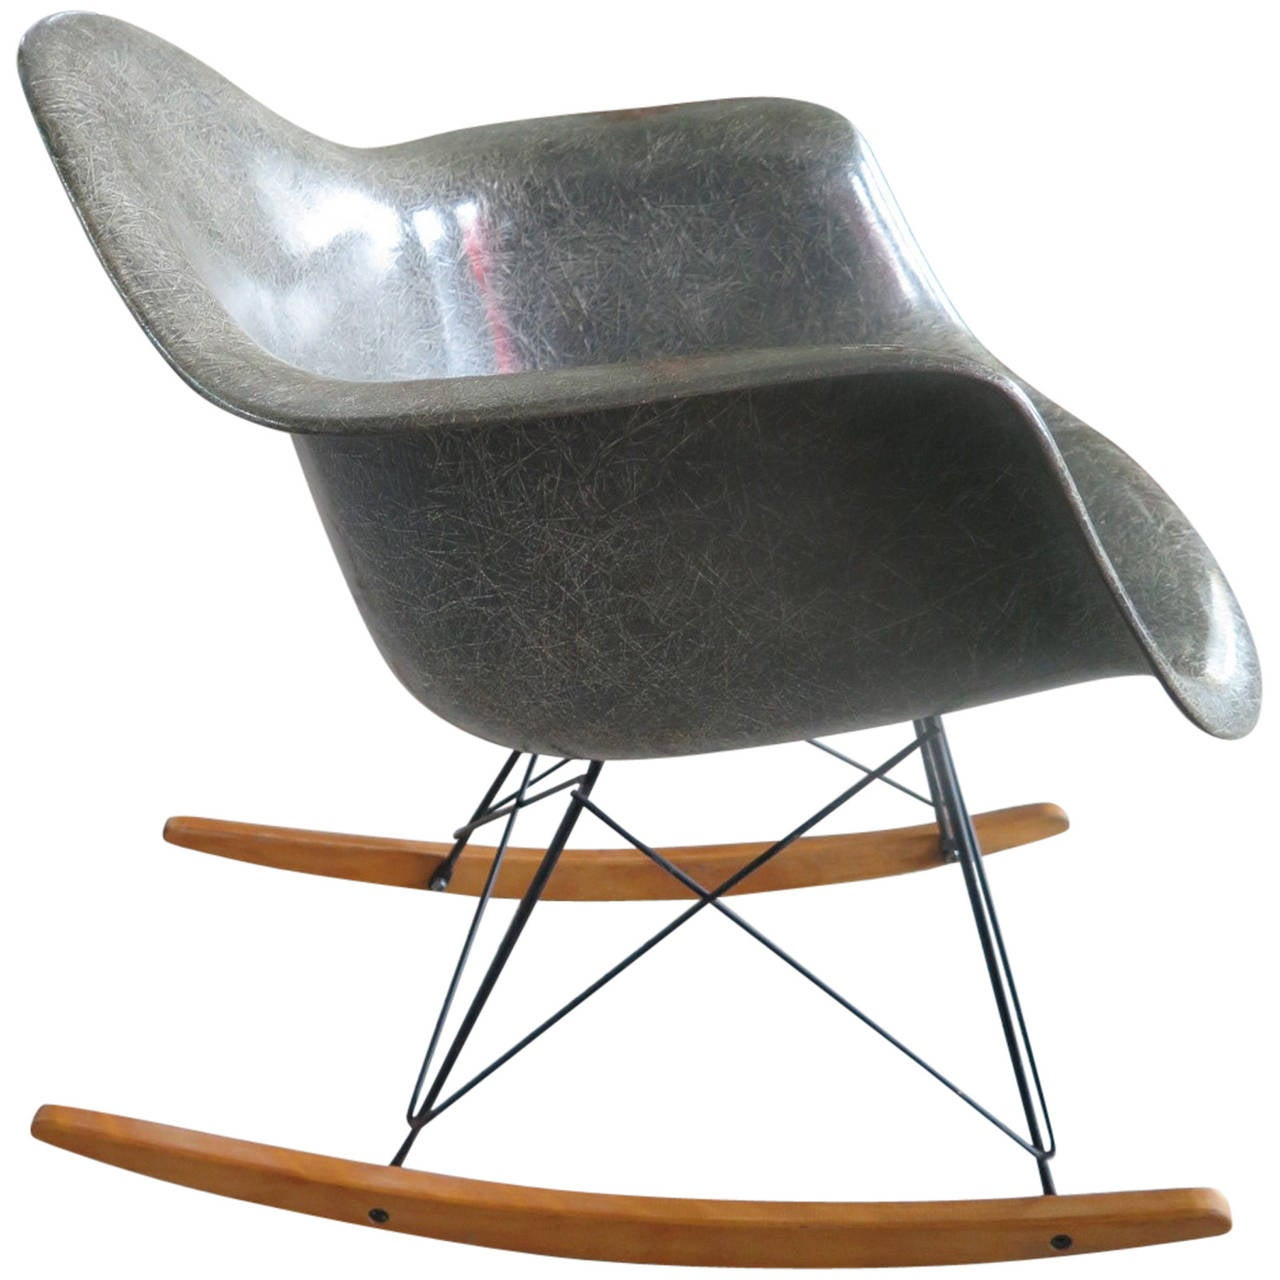 charles eames rocking chair rar early production zenith for sale at 1stdibs. Black Bedroom Furniture Sets. Home Design Ideas